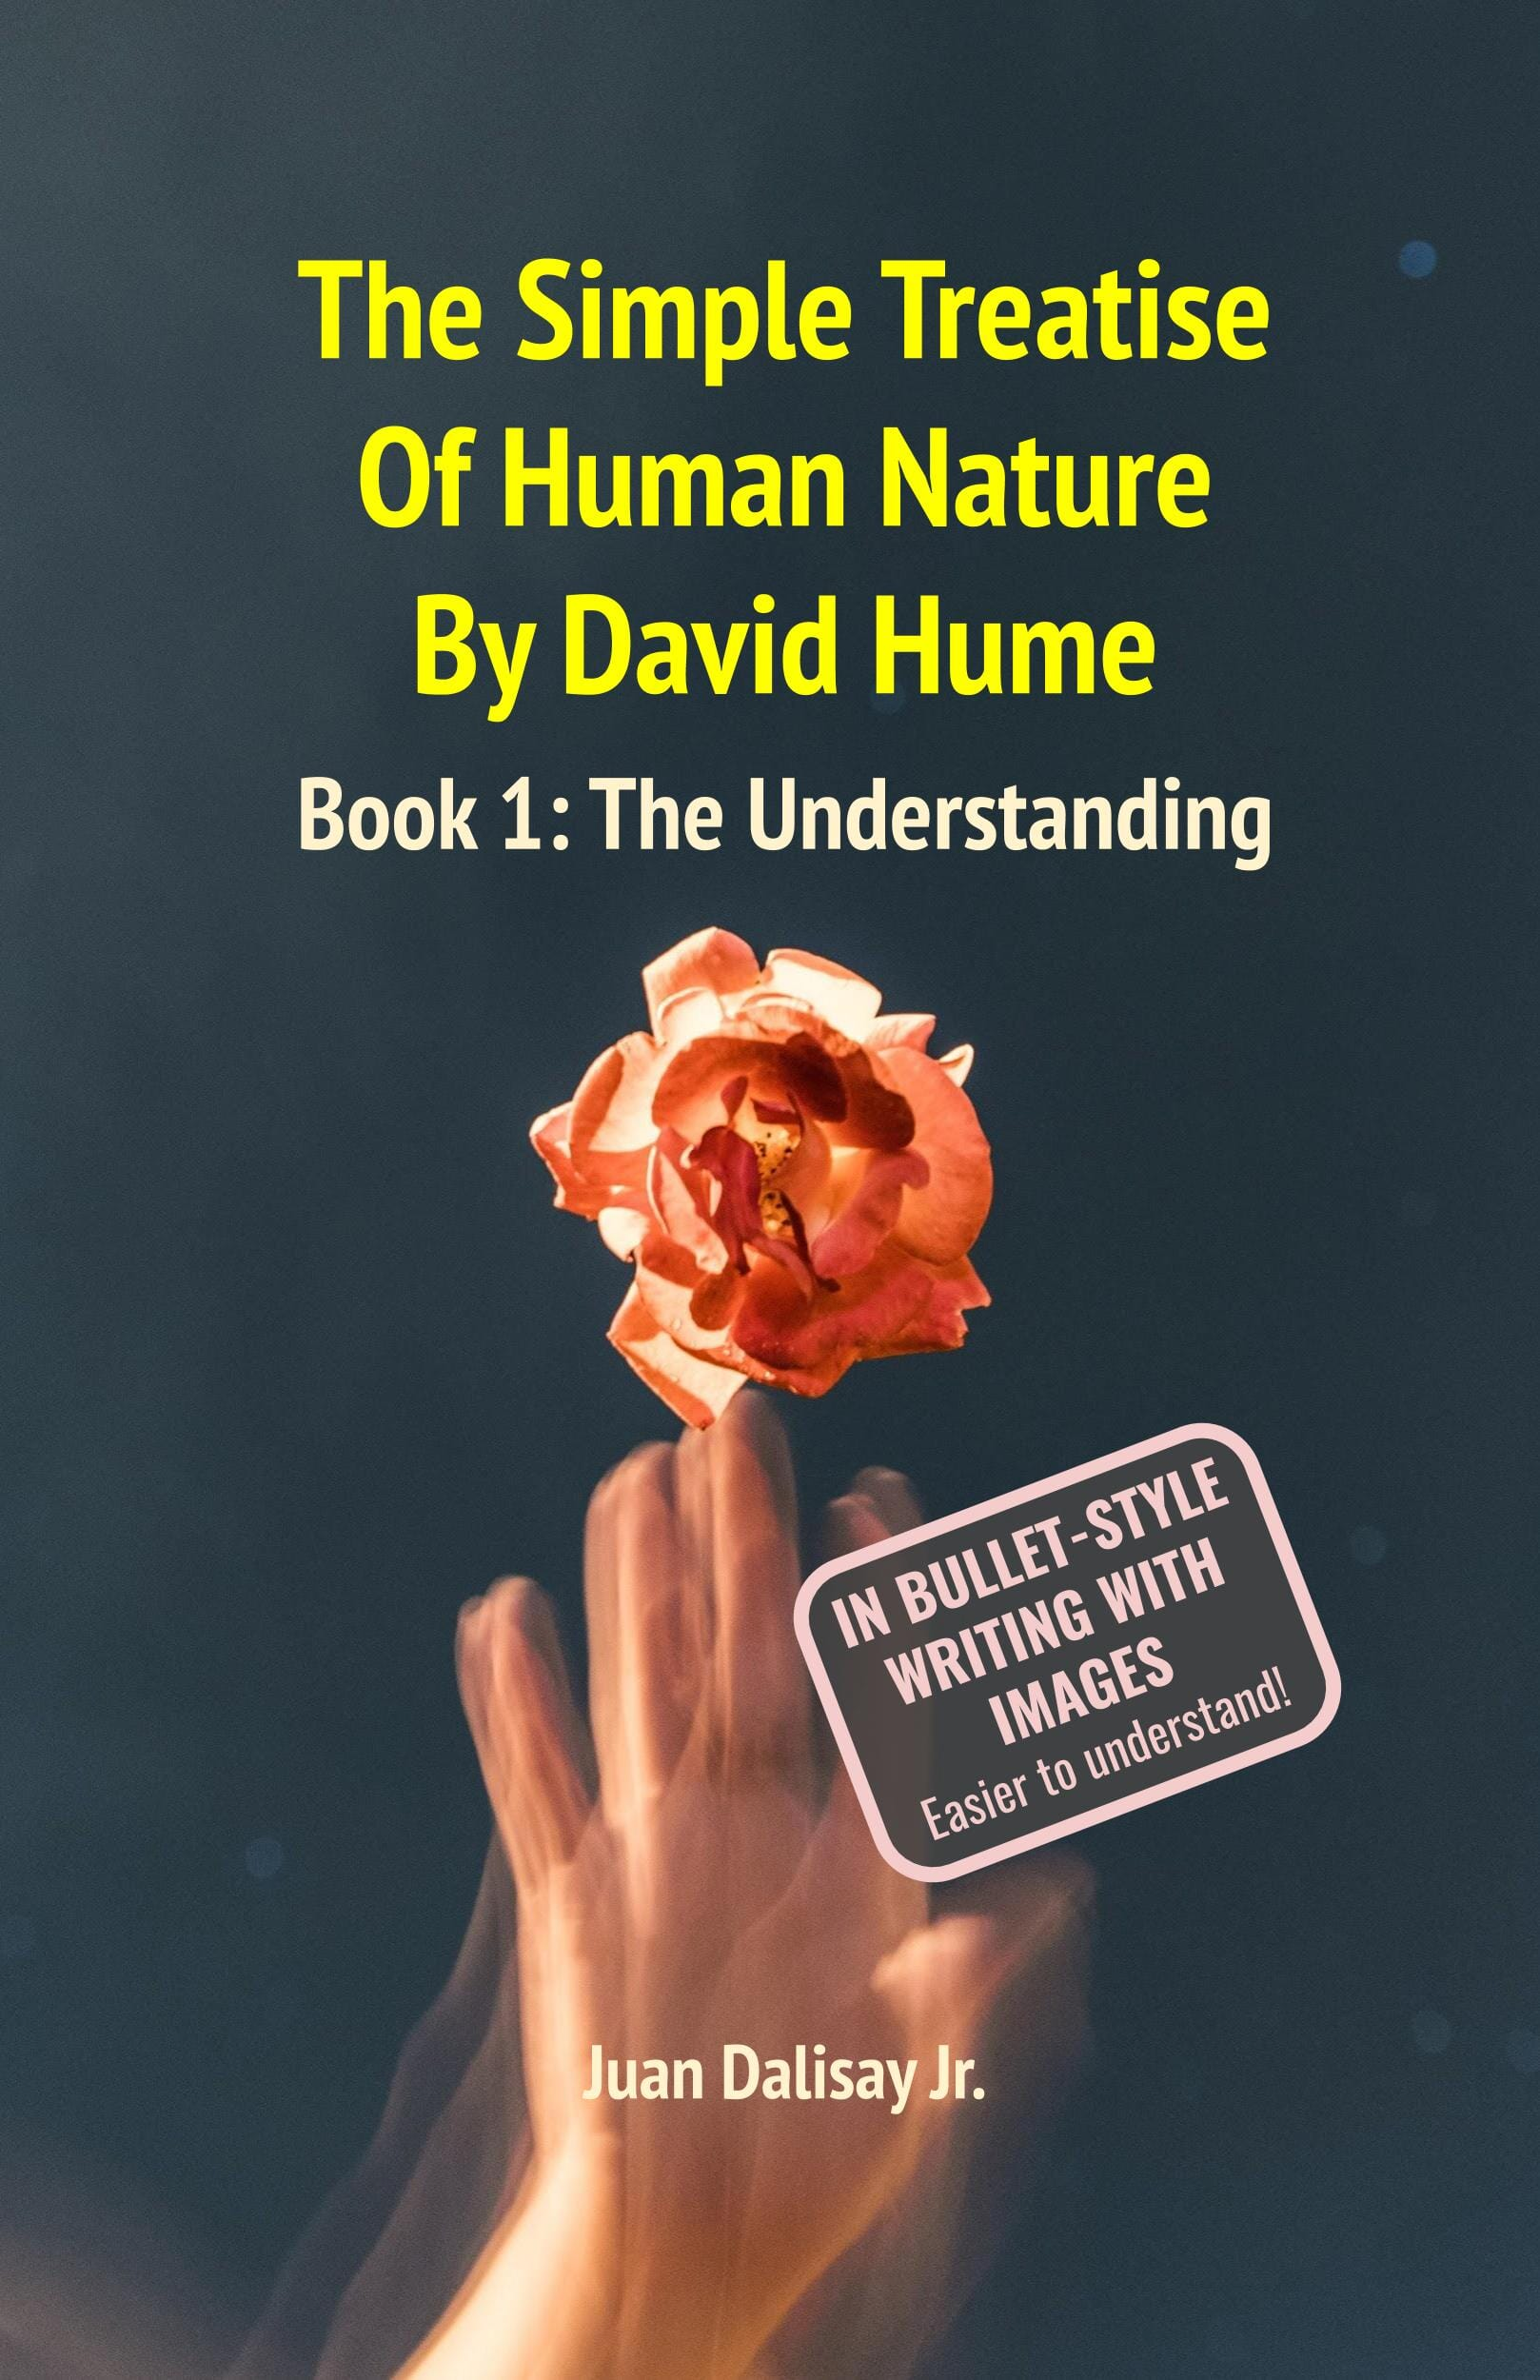 The Simple Treatise of Human Nature Book 1: The Understanding